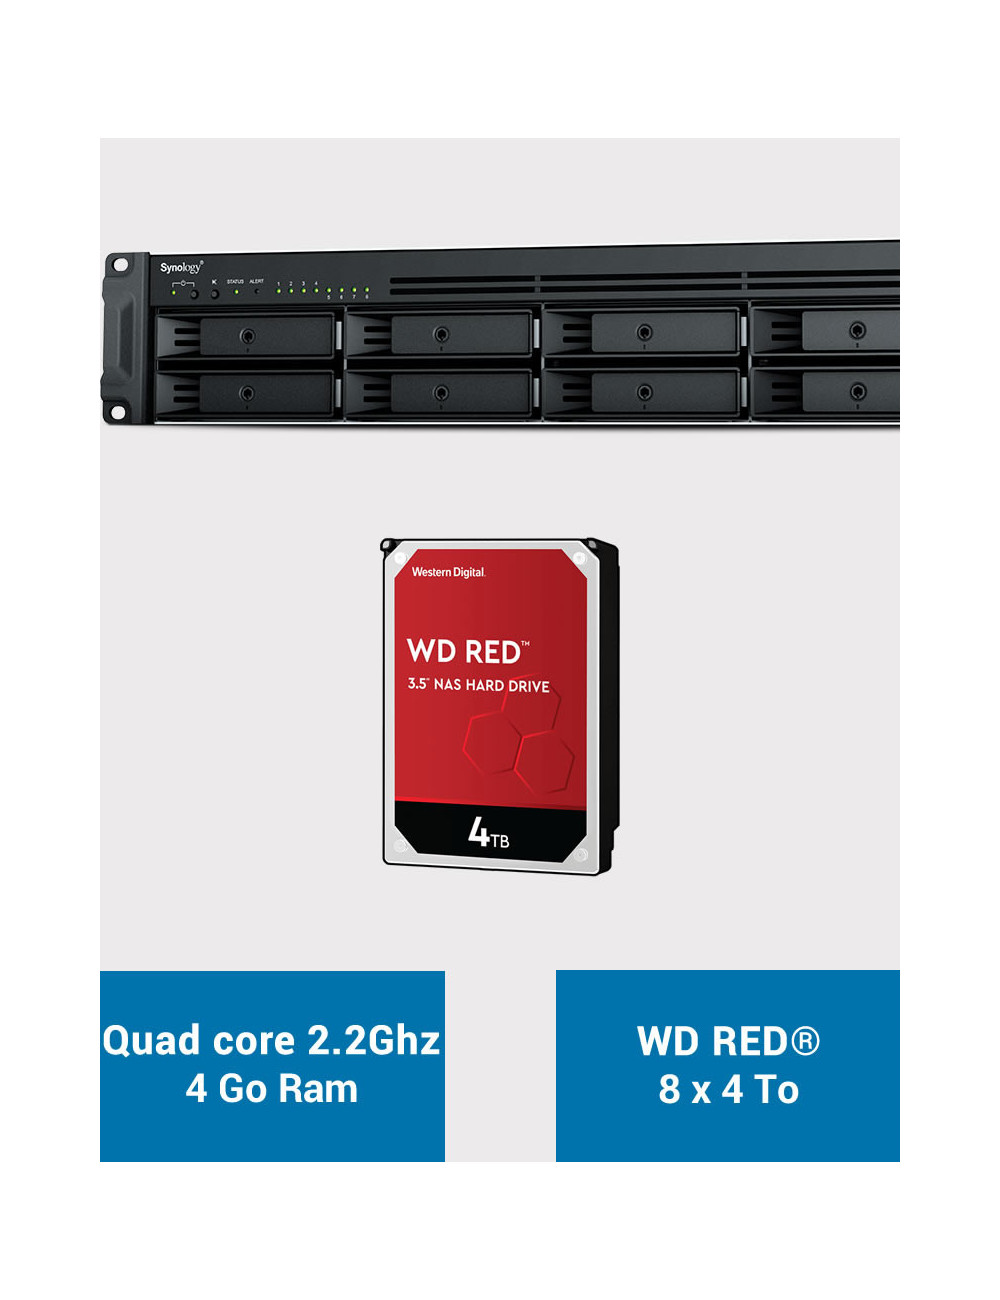 Synology RS1221+ Serveur NAS Rack WD RED 32To (8x4To)